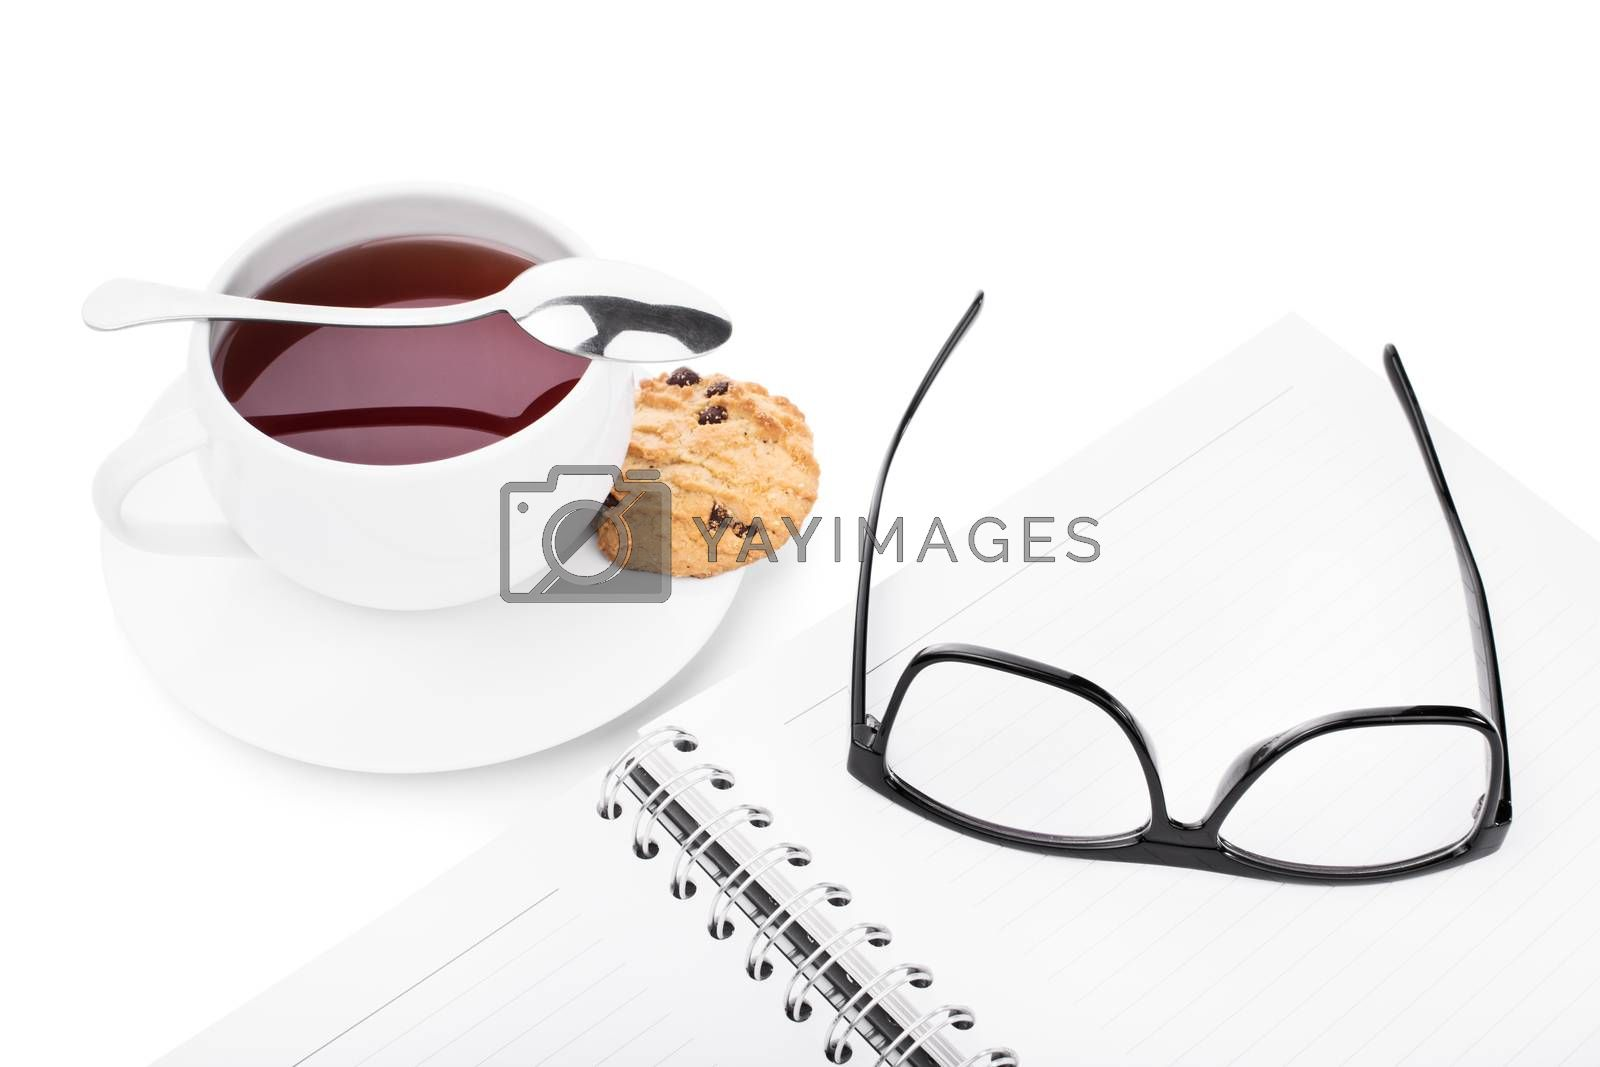 Glasses and notebook with a cup of tea and cookie, isolated on white background.